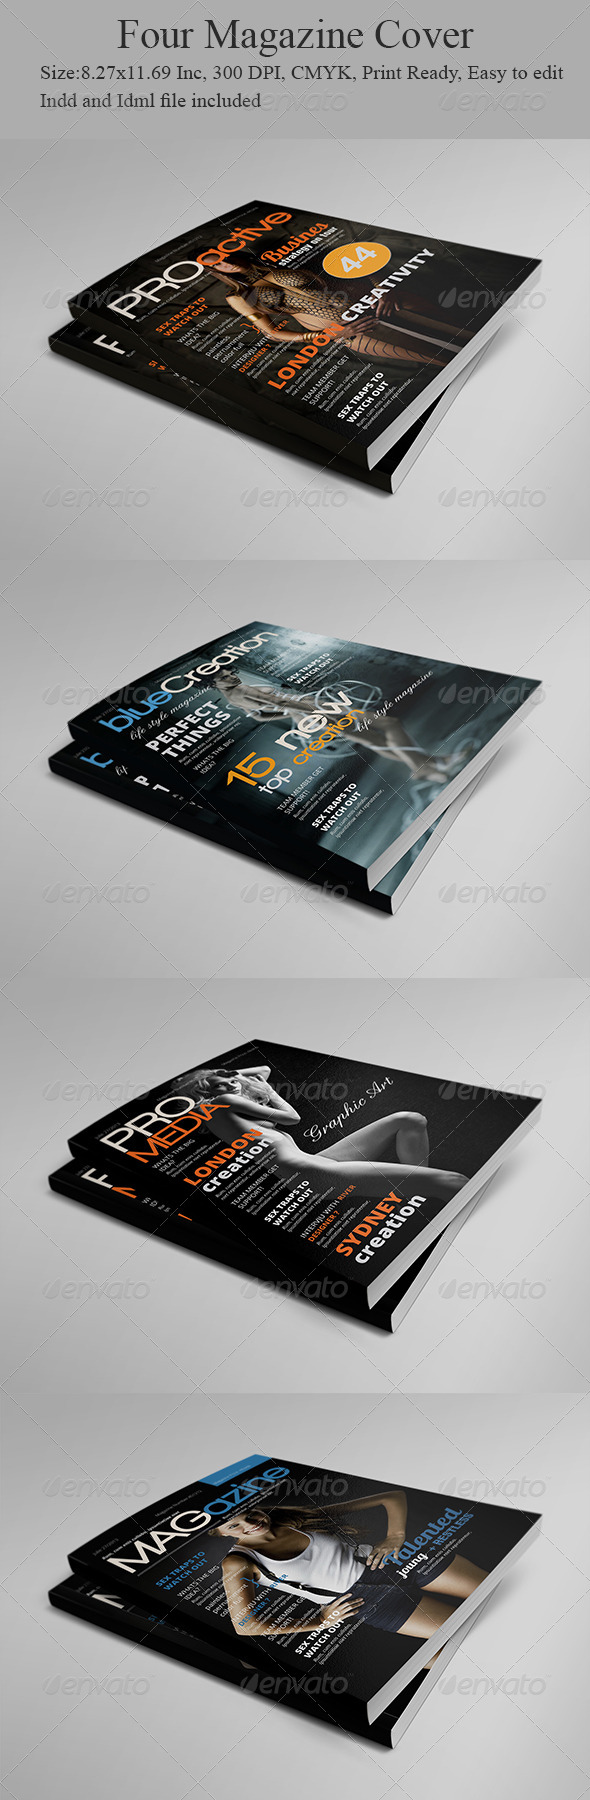 Four Magazine Cover Templates - Magazines Print Templates